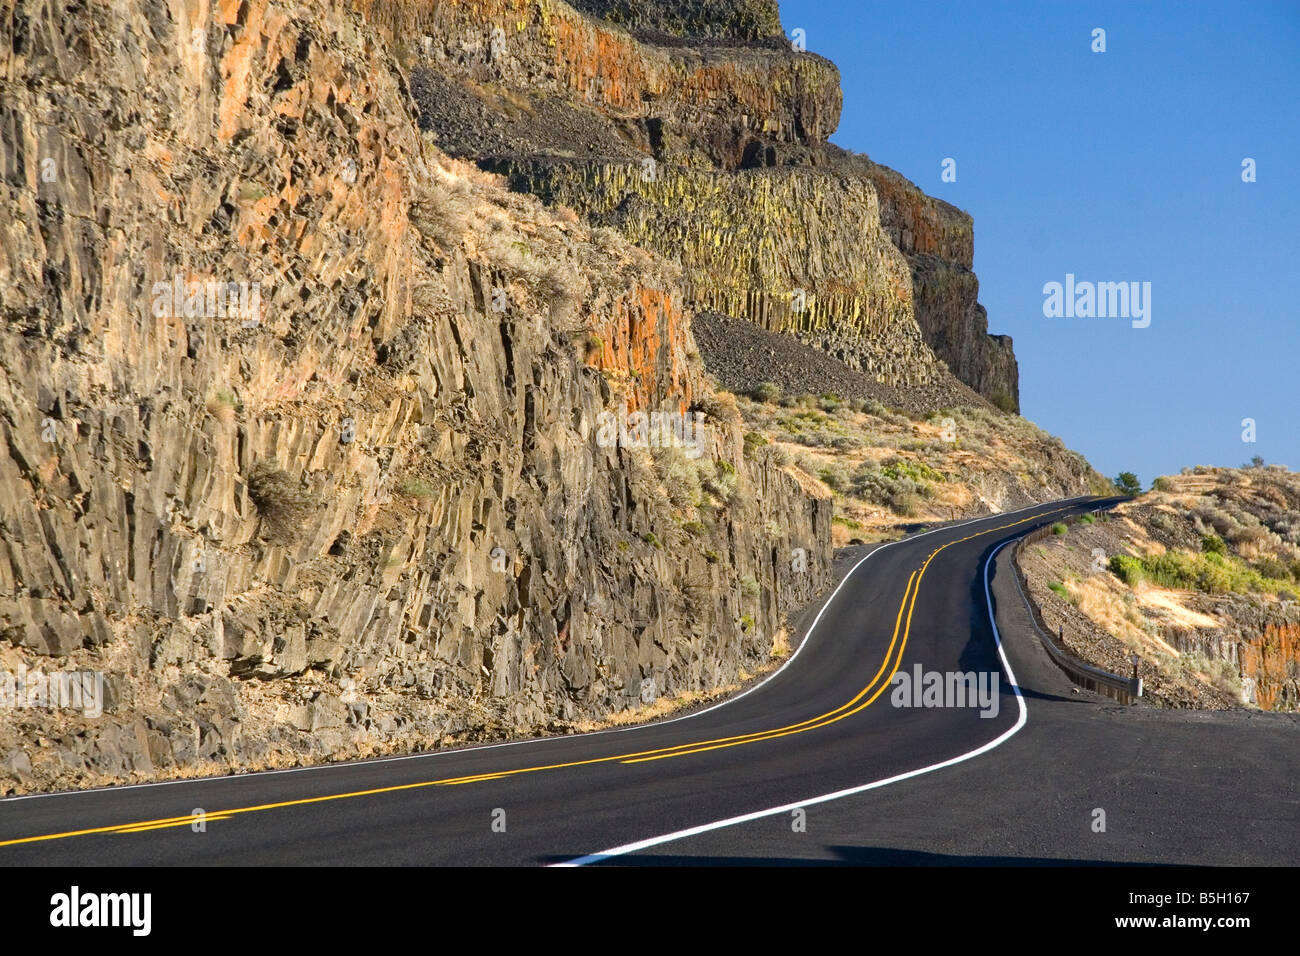 Basalt rock cliffs along the highway near Soap Lake Washington - Stock Image